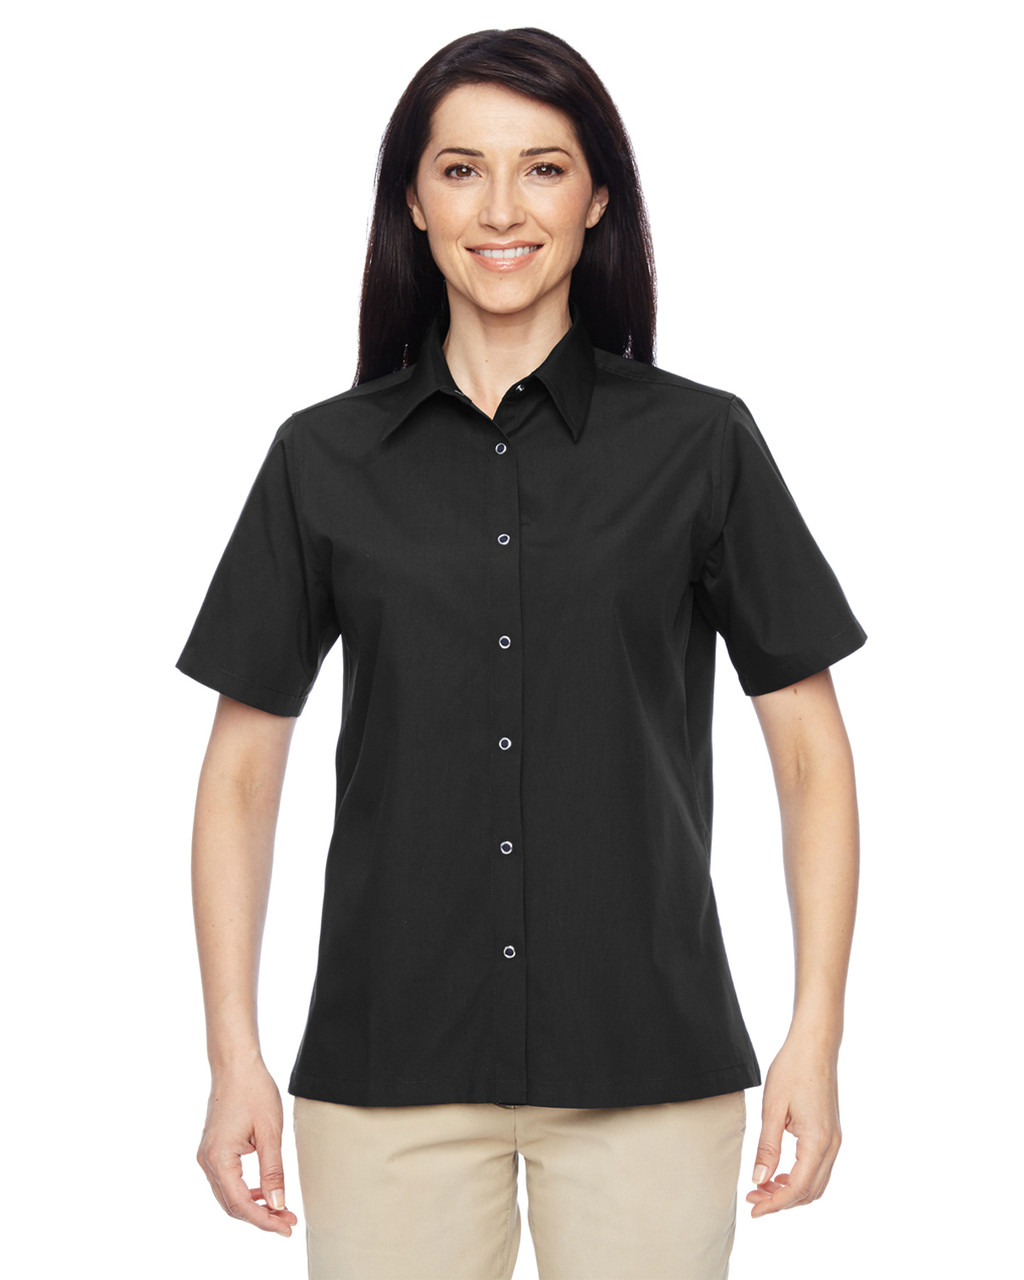 Black - M545W Harriton Ladies Advantage Snap Closure Short-Sleeve Shirt